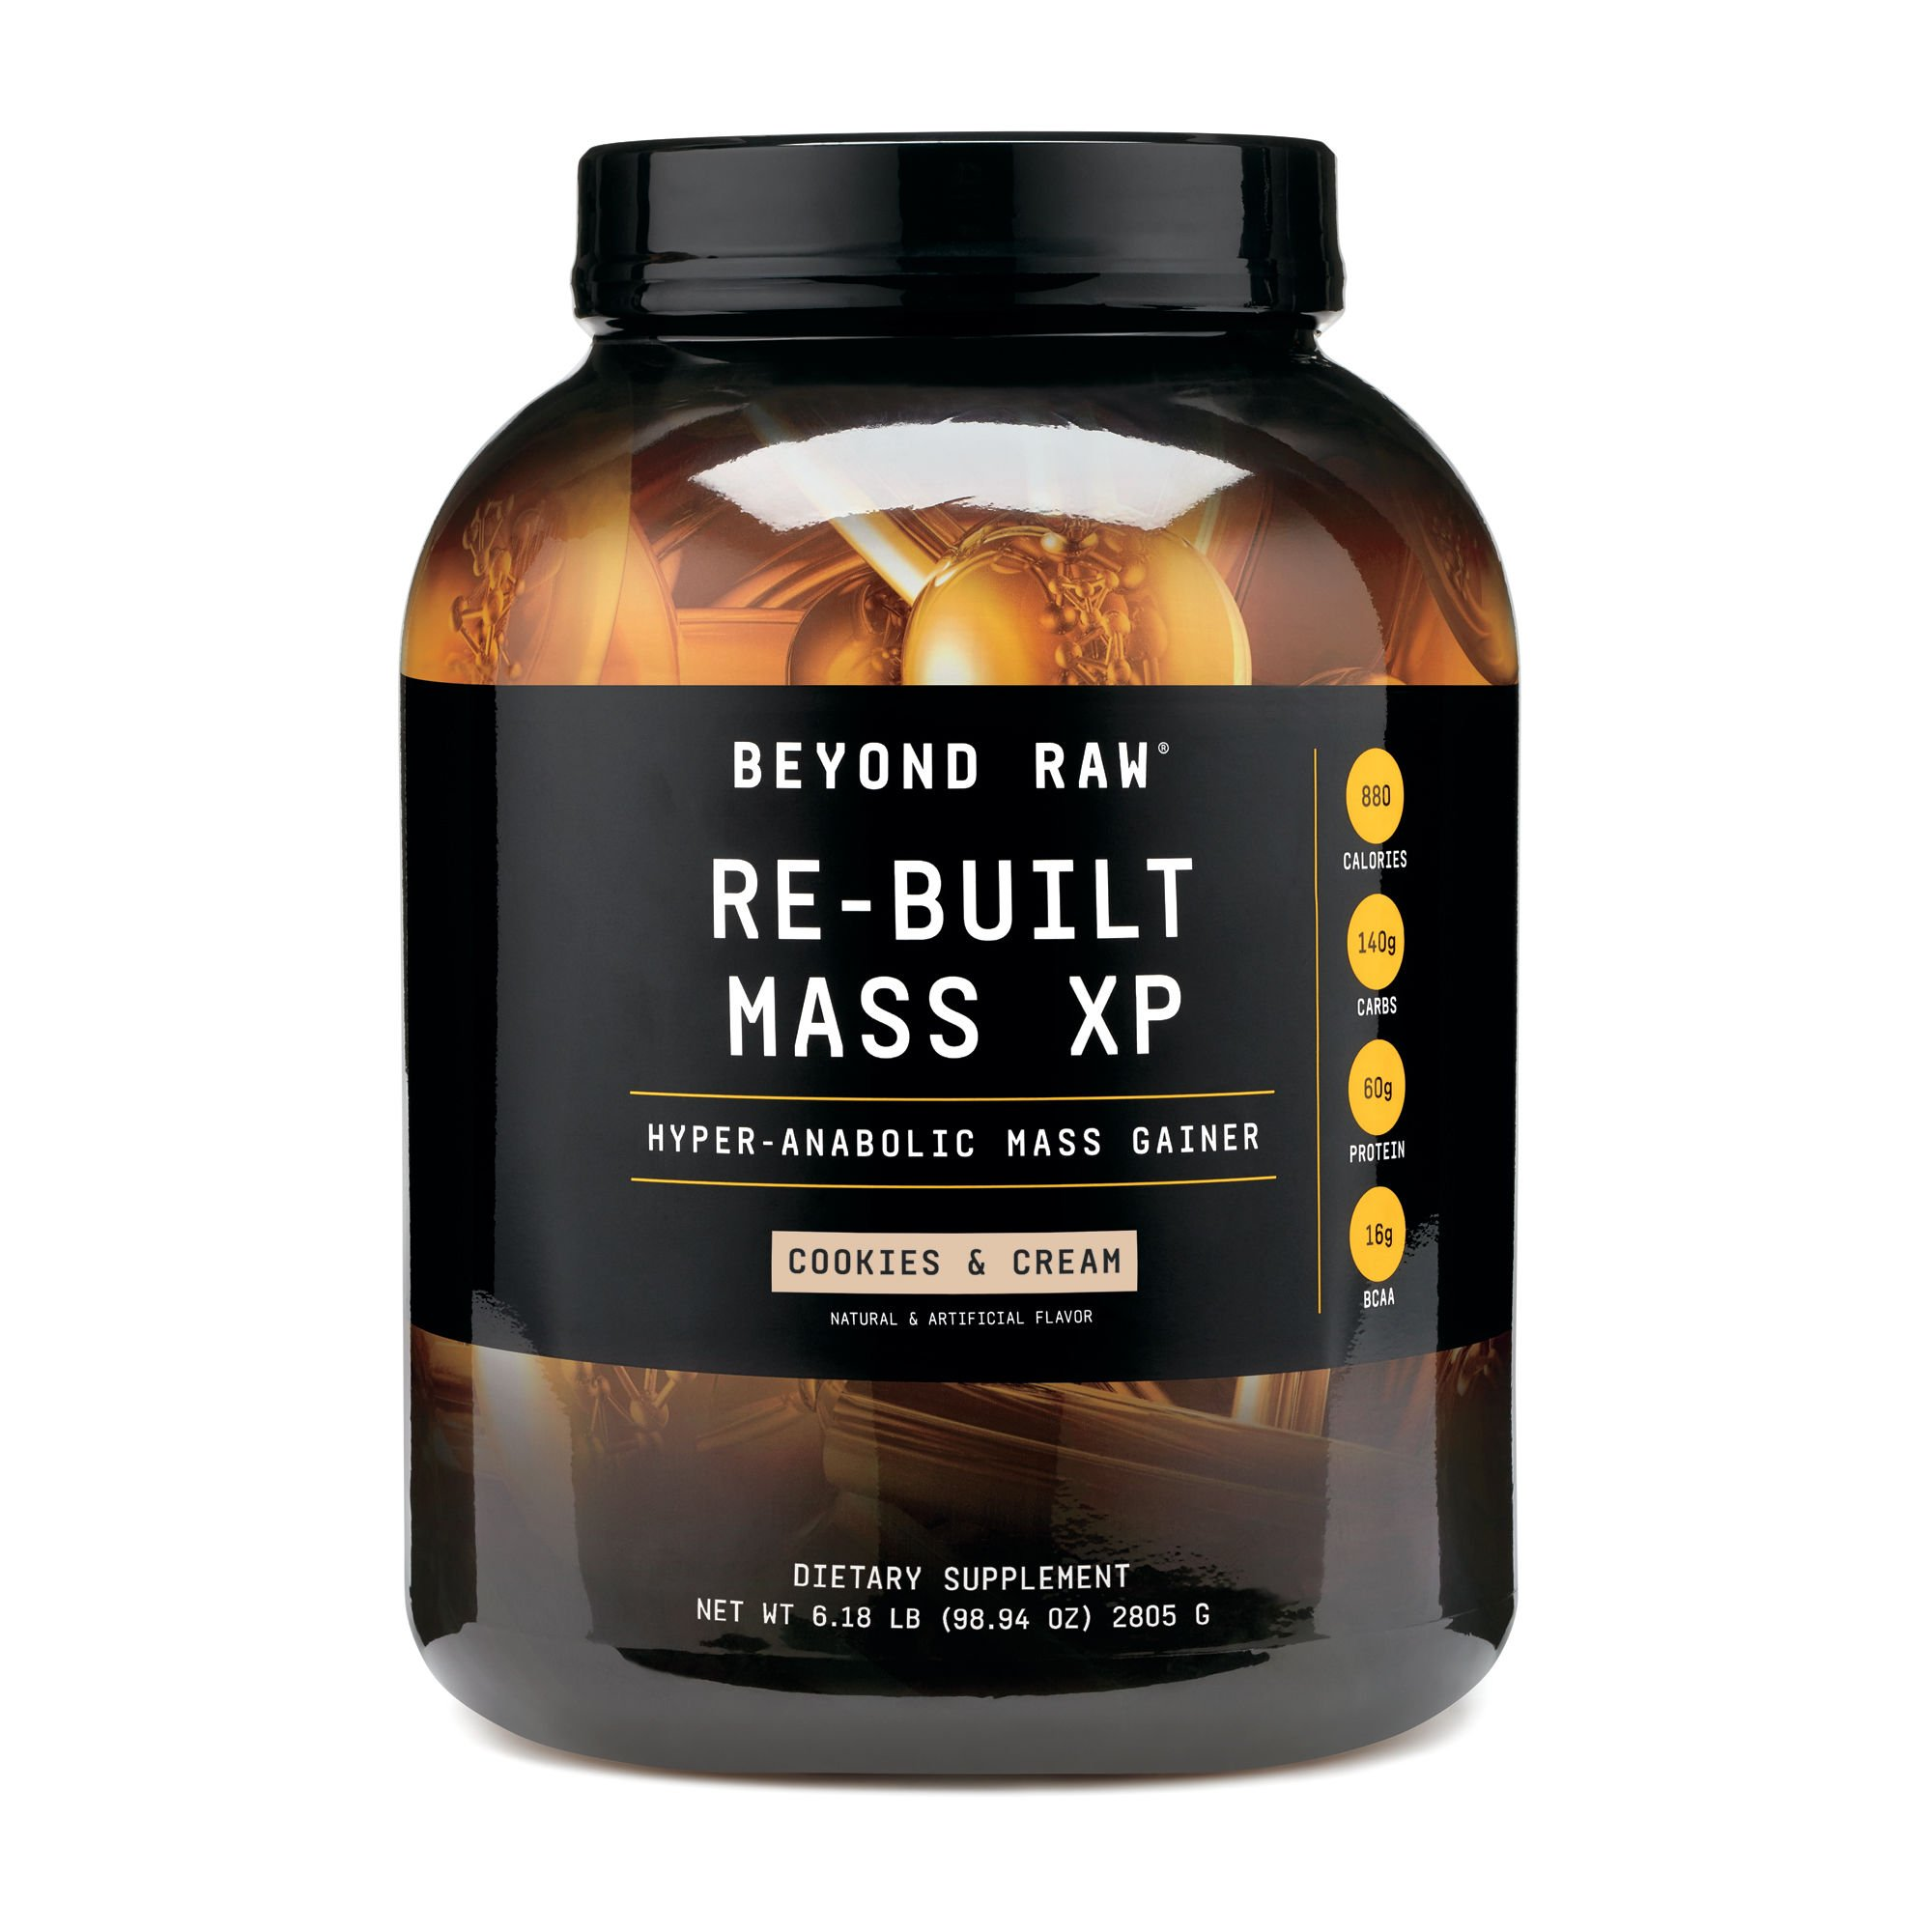 Beyond Raw Re-Built Mass XP, Cookies and Cream, 11 Servings, Contains 880 Calories, 140g of Carbohydrates and 60g of Protein